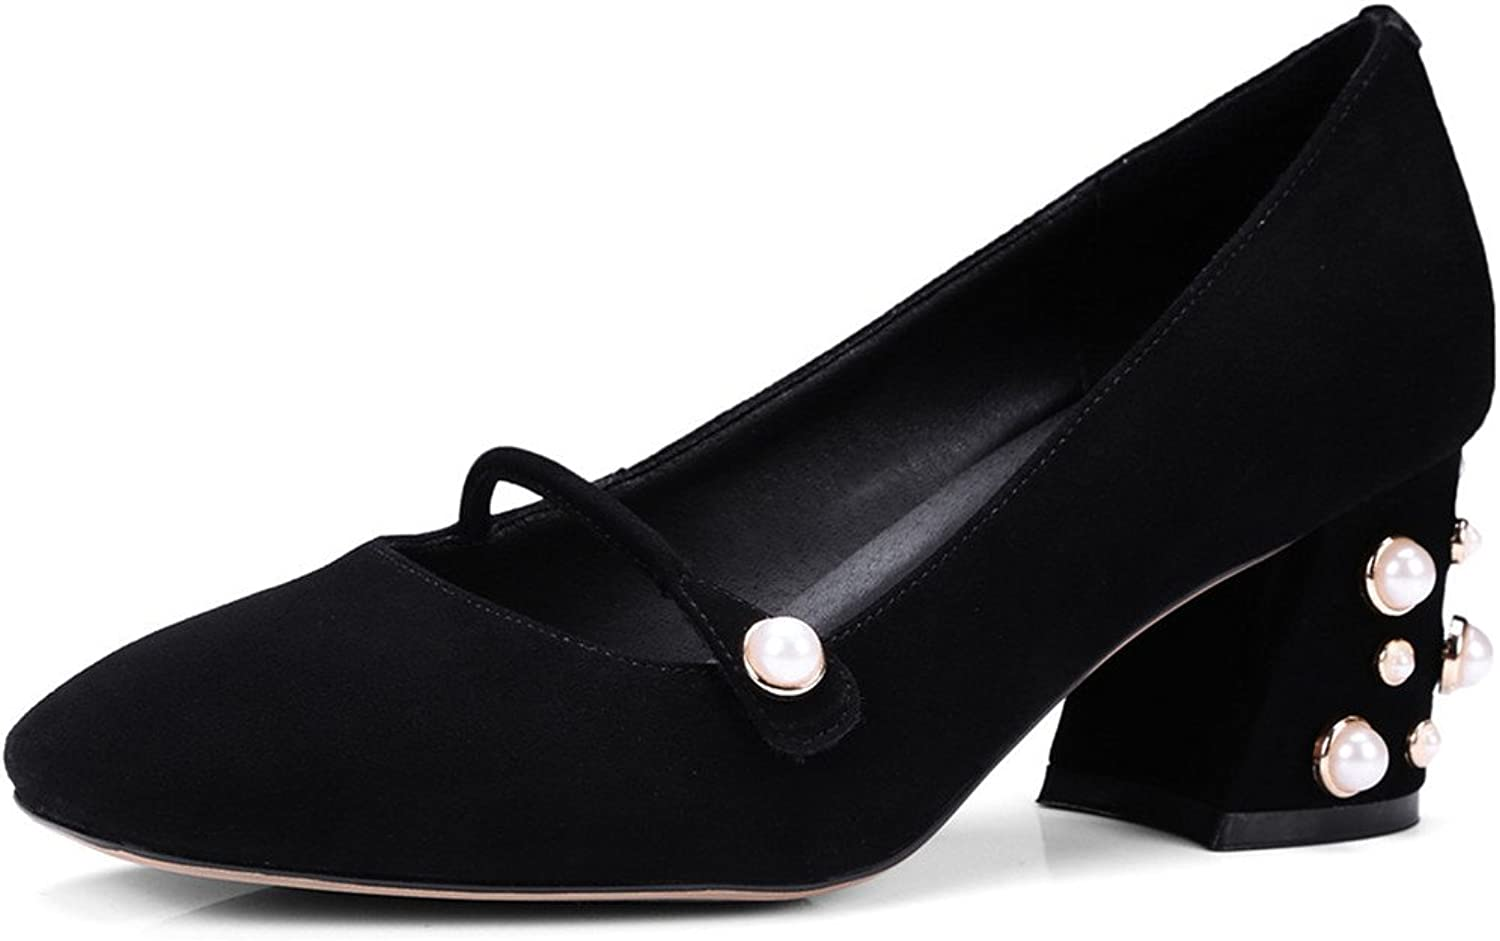 Nine Seven Suede Leather Women's Square Toe Chunky Heel Pearls Slip On Handmade Cute Pumps shoes